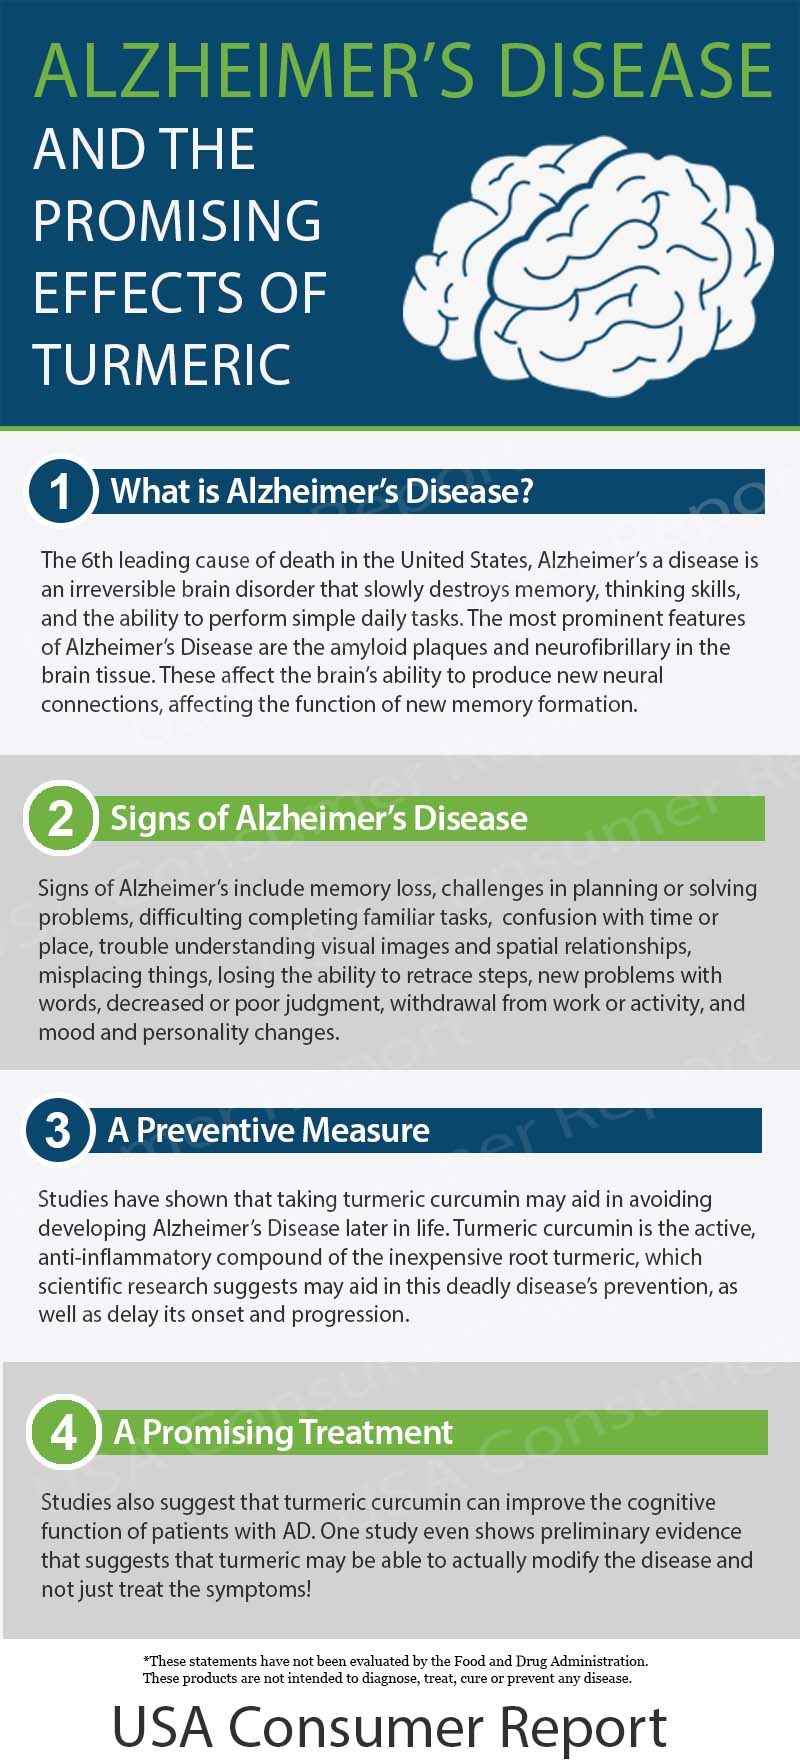 Infographic on turmeric and how it can help with Alzheimer's